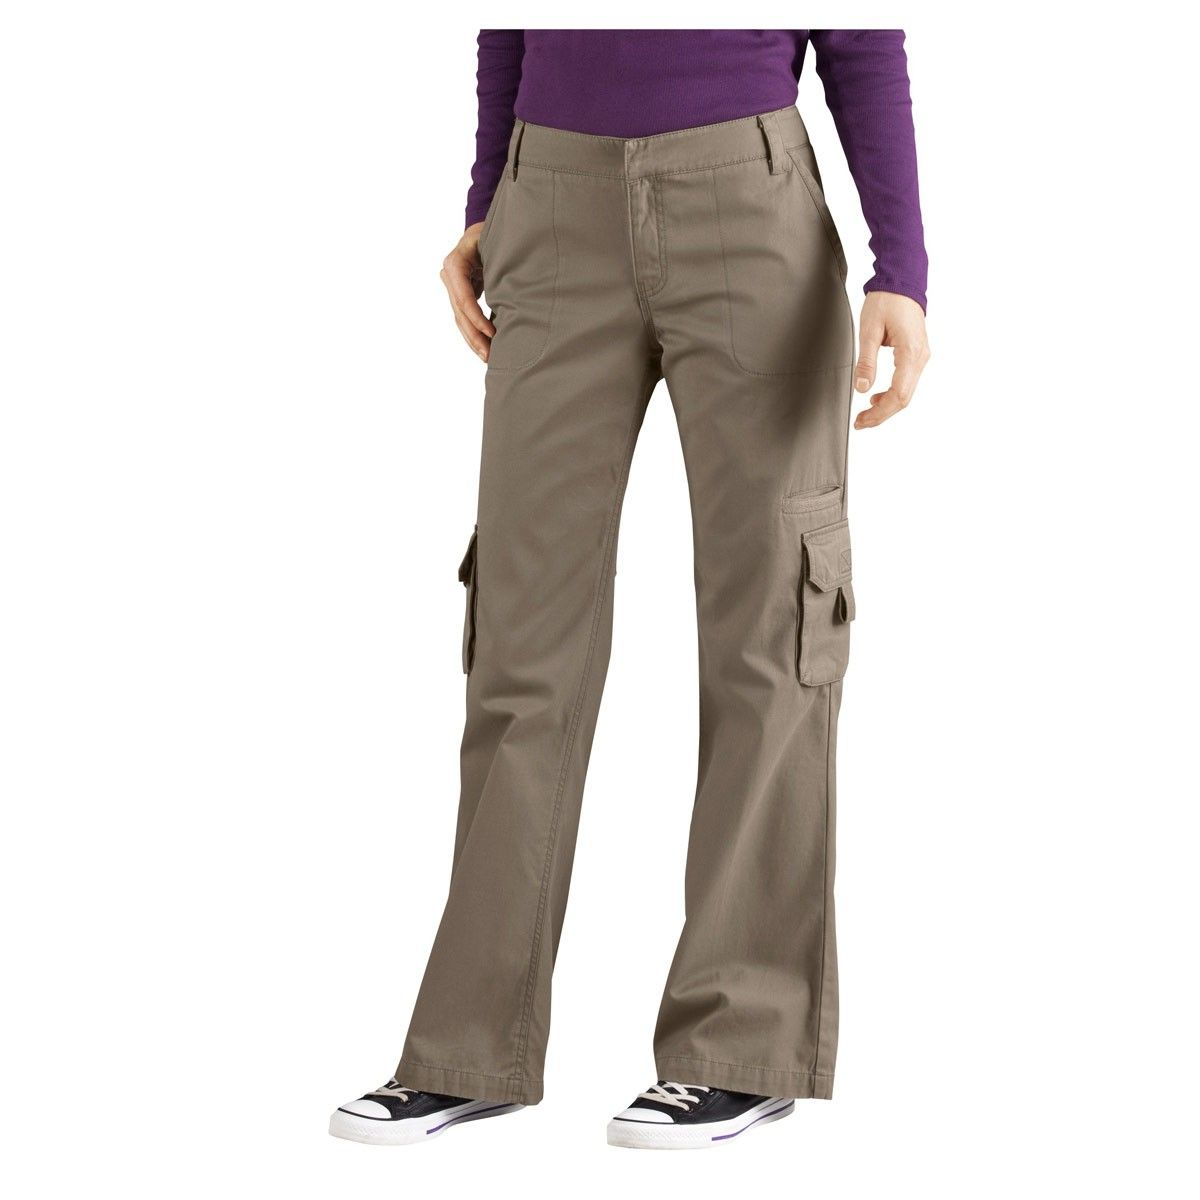 a2530e362cef Dickies Women s Relaxed Fit Straight Leg Cargo Pants - FP777